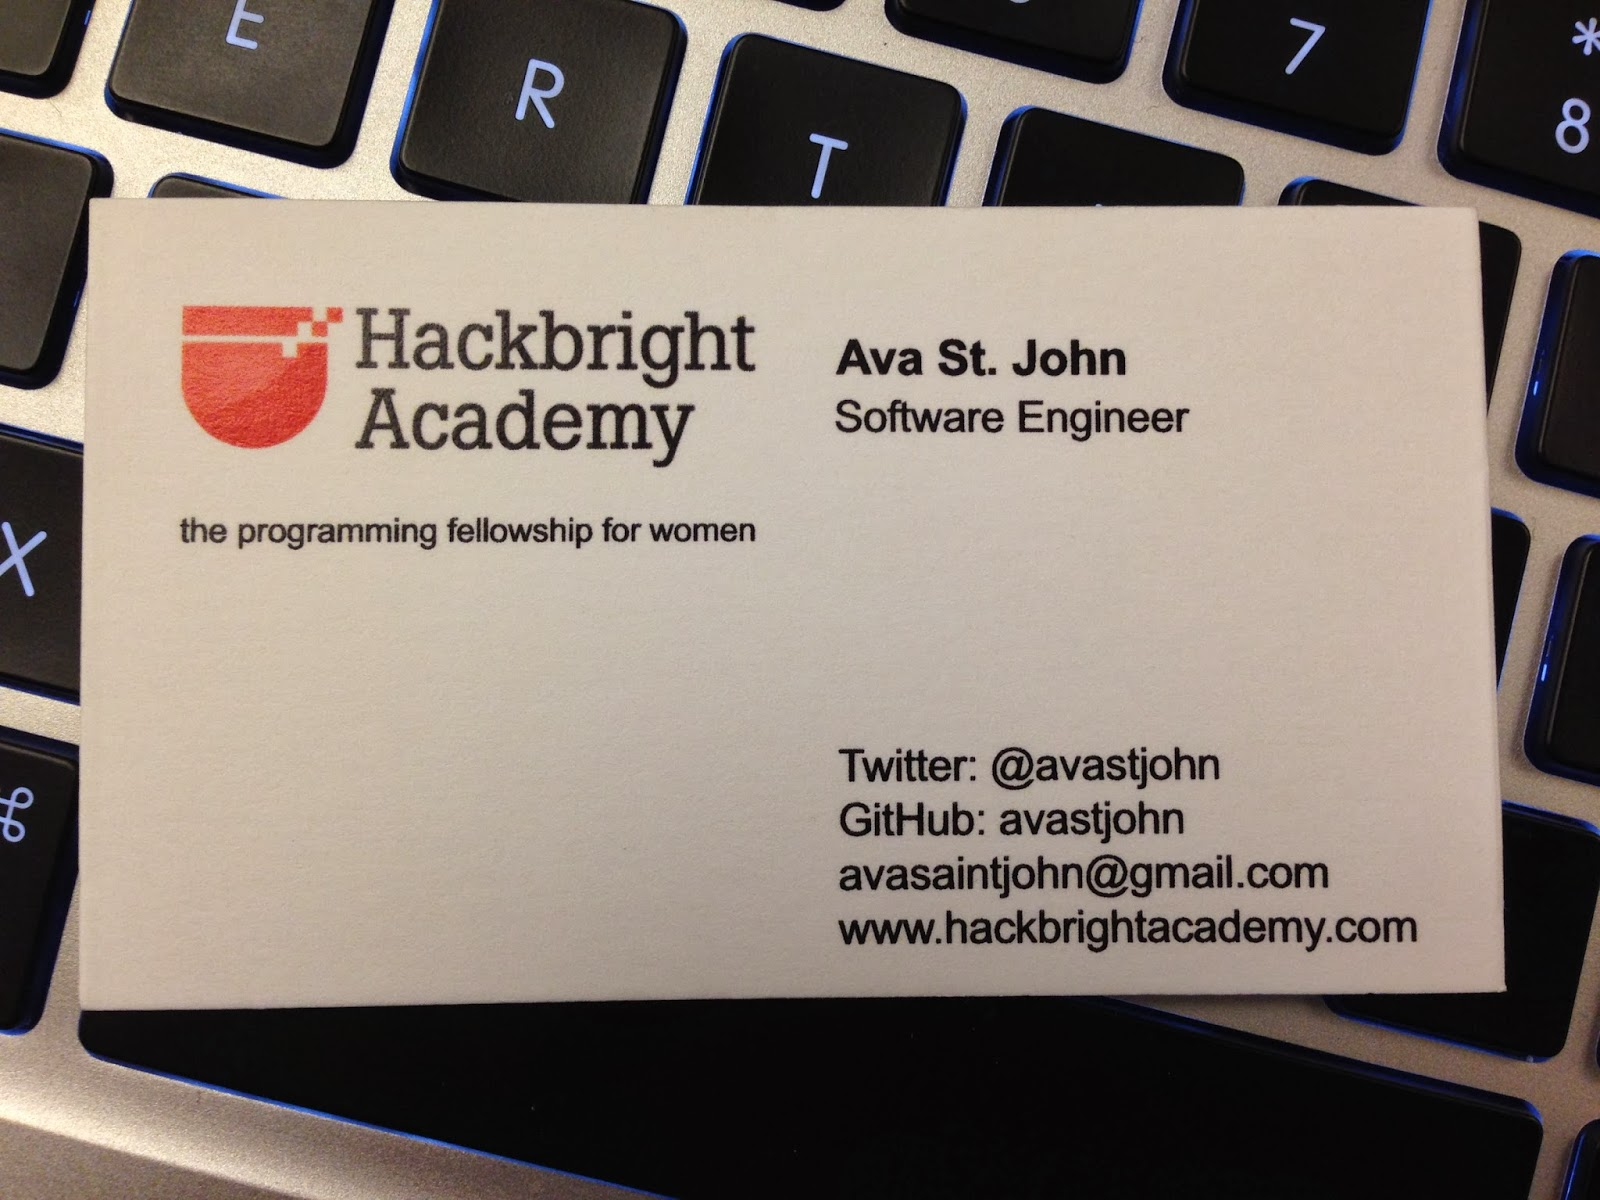 Side note: We were all given business cards for the conference. That ...